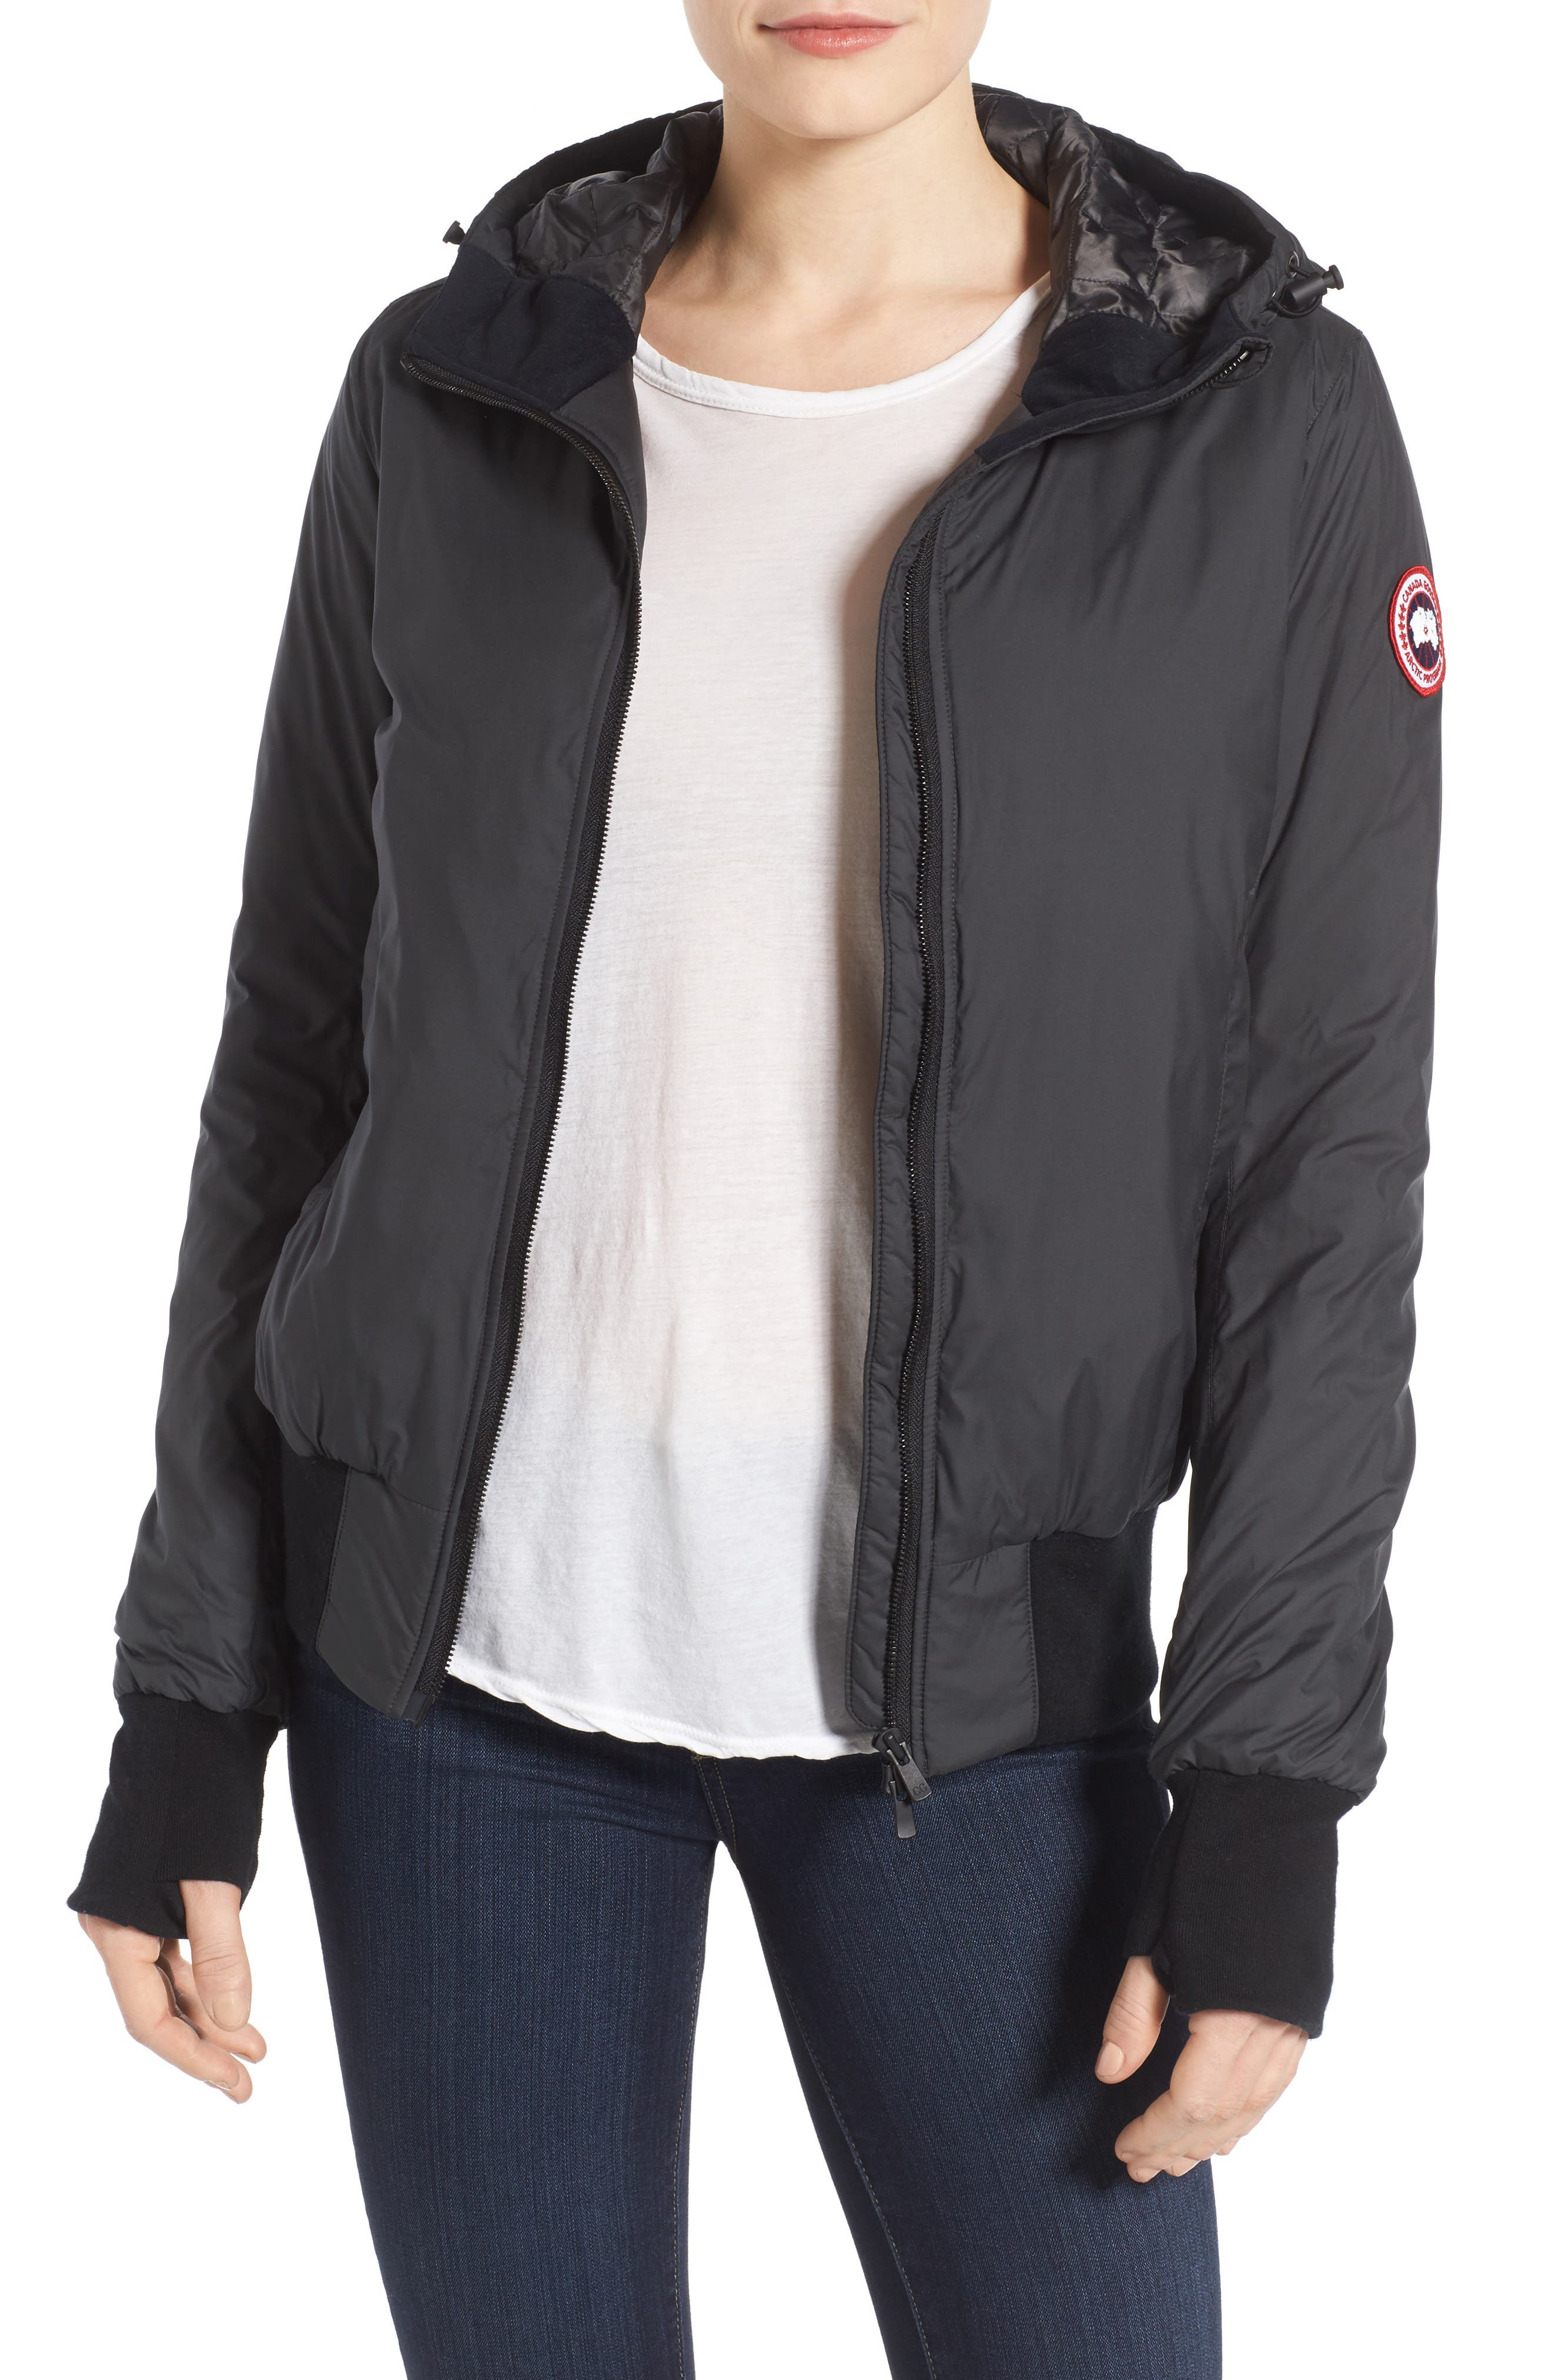 Canada Goose Dore Goose Down Hooded Jacket, (0) - Black